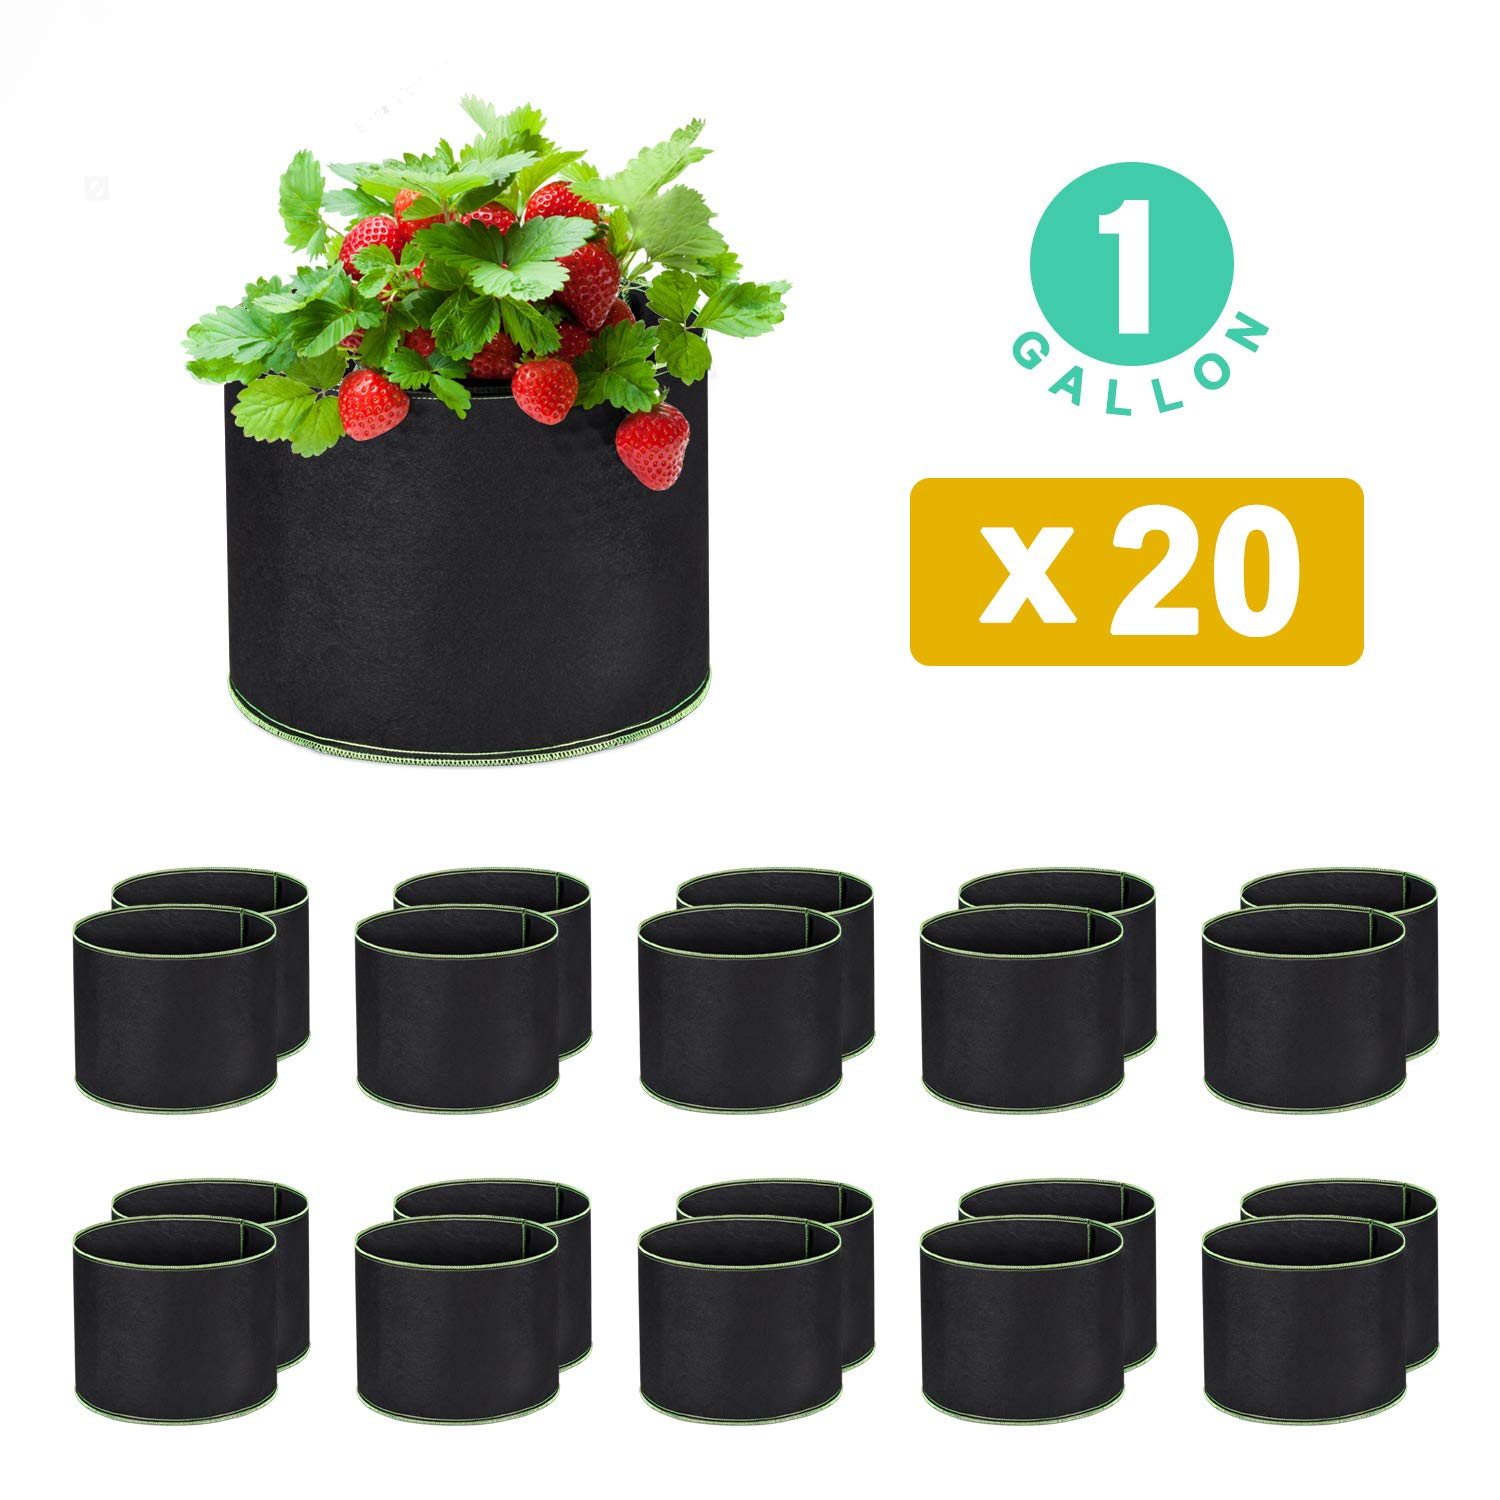 WOHOUS 20-Pack 1 Gallon Plant Grow Bags Heavy Duty Aeration Fabric Pots Thickened Nonwoven 1 Gallon Fabric Pots Plant Grow Bags 20, 1 Gallon